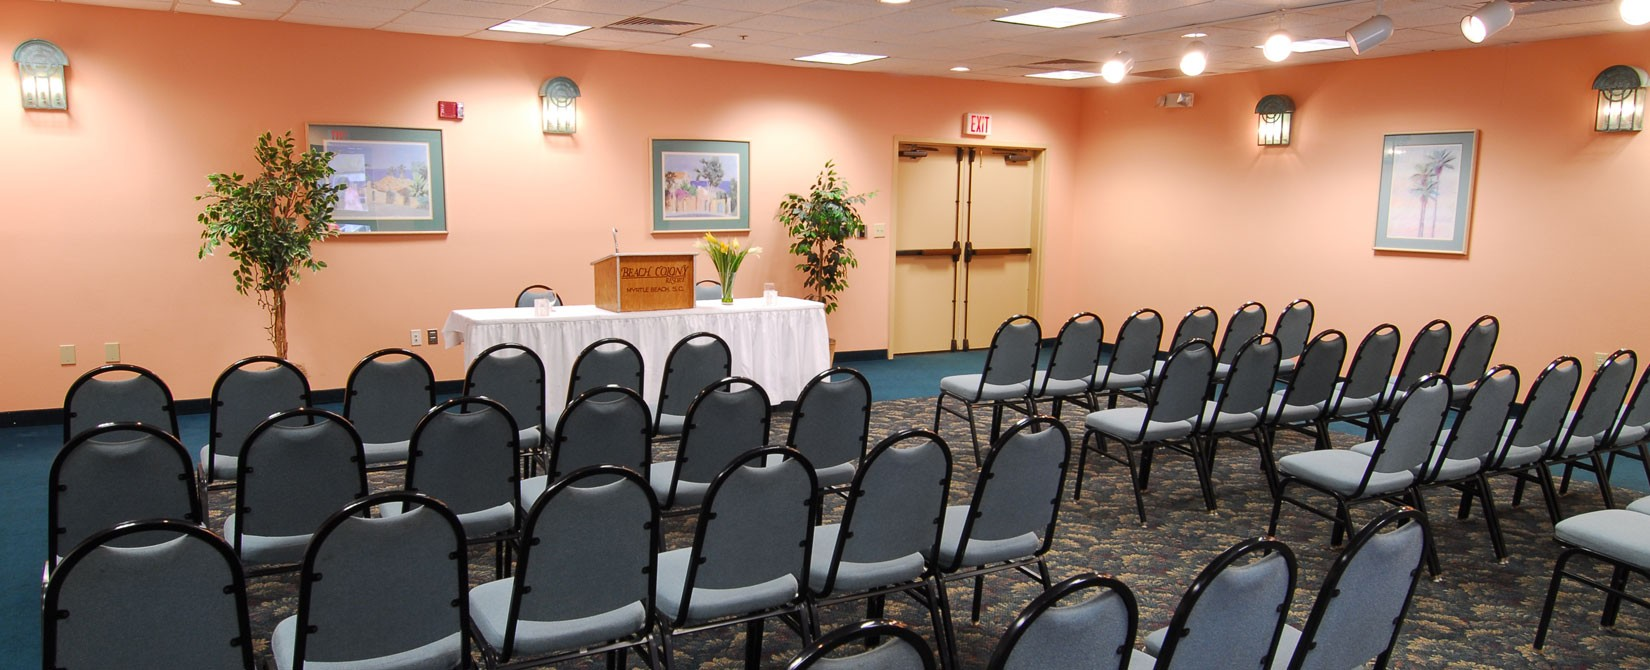 Meeting room with podium and chairs at Beach Colony Resort